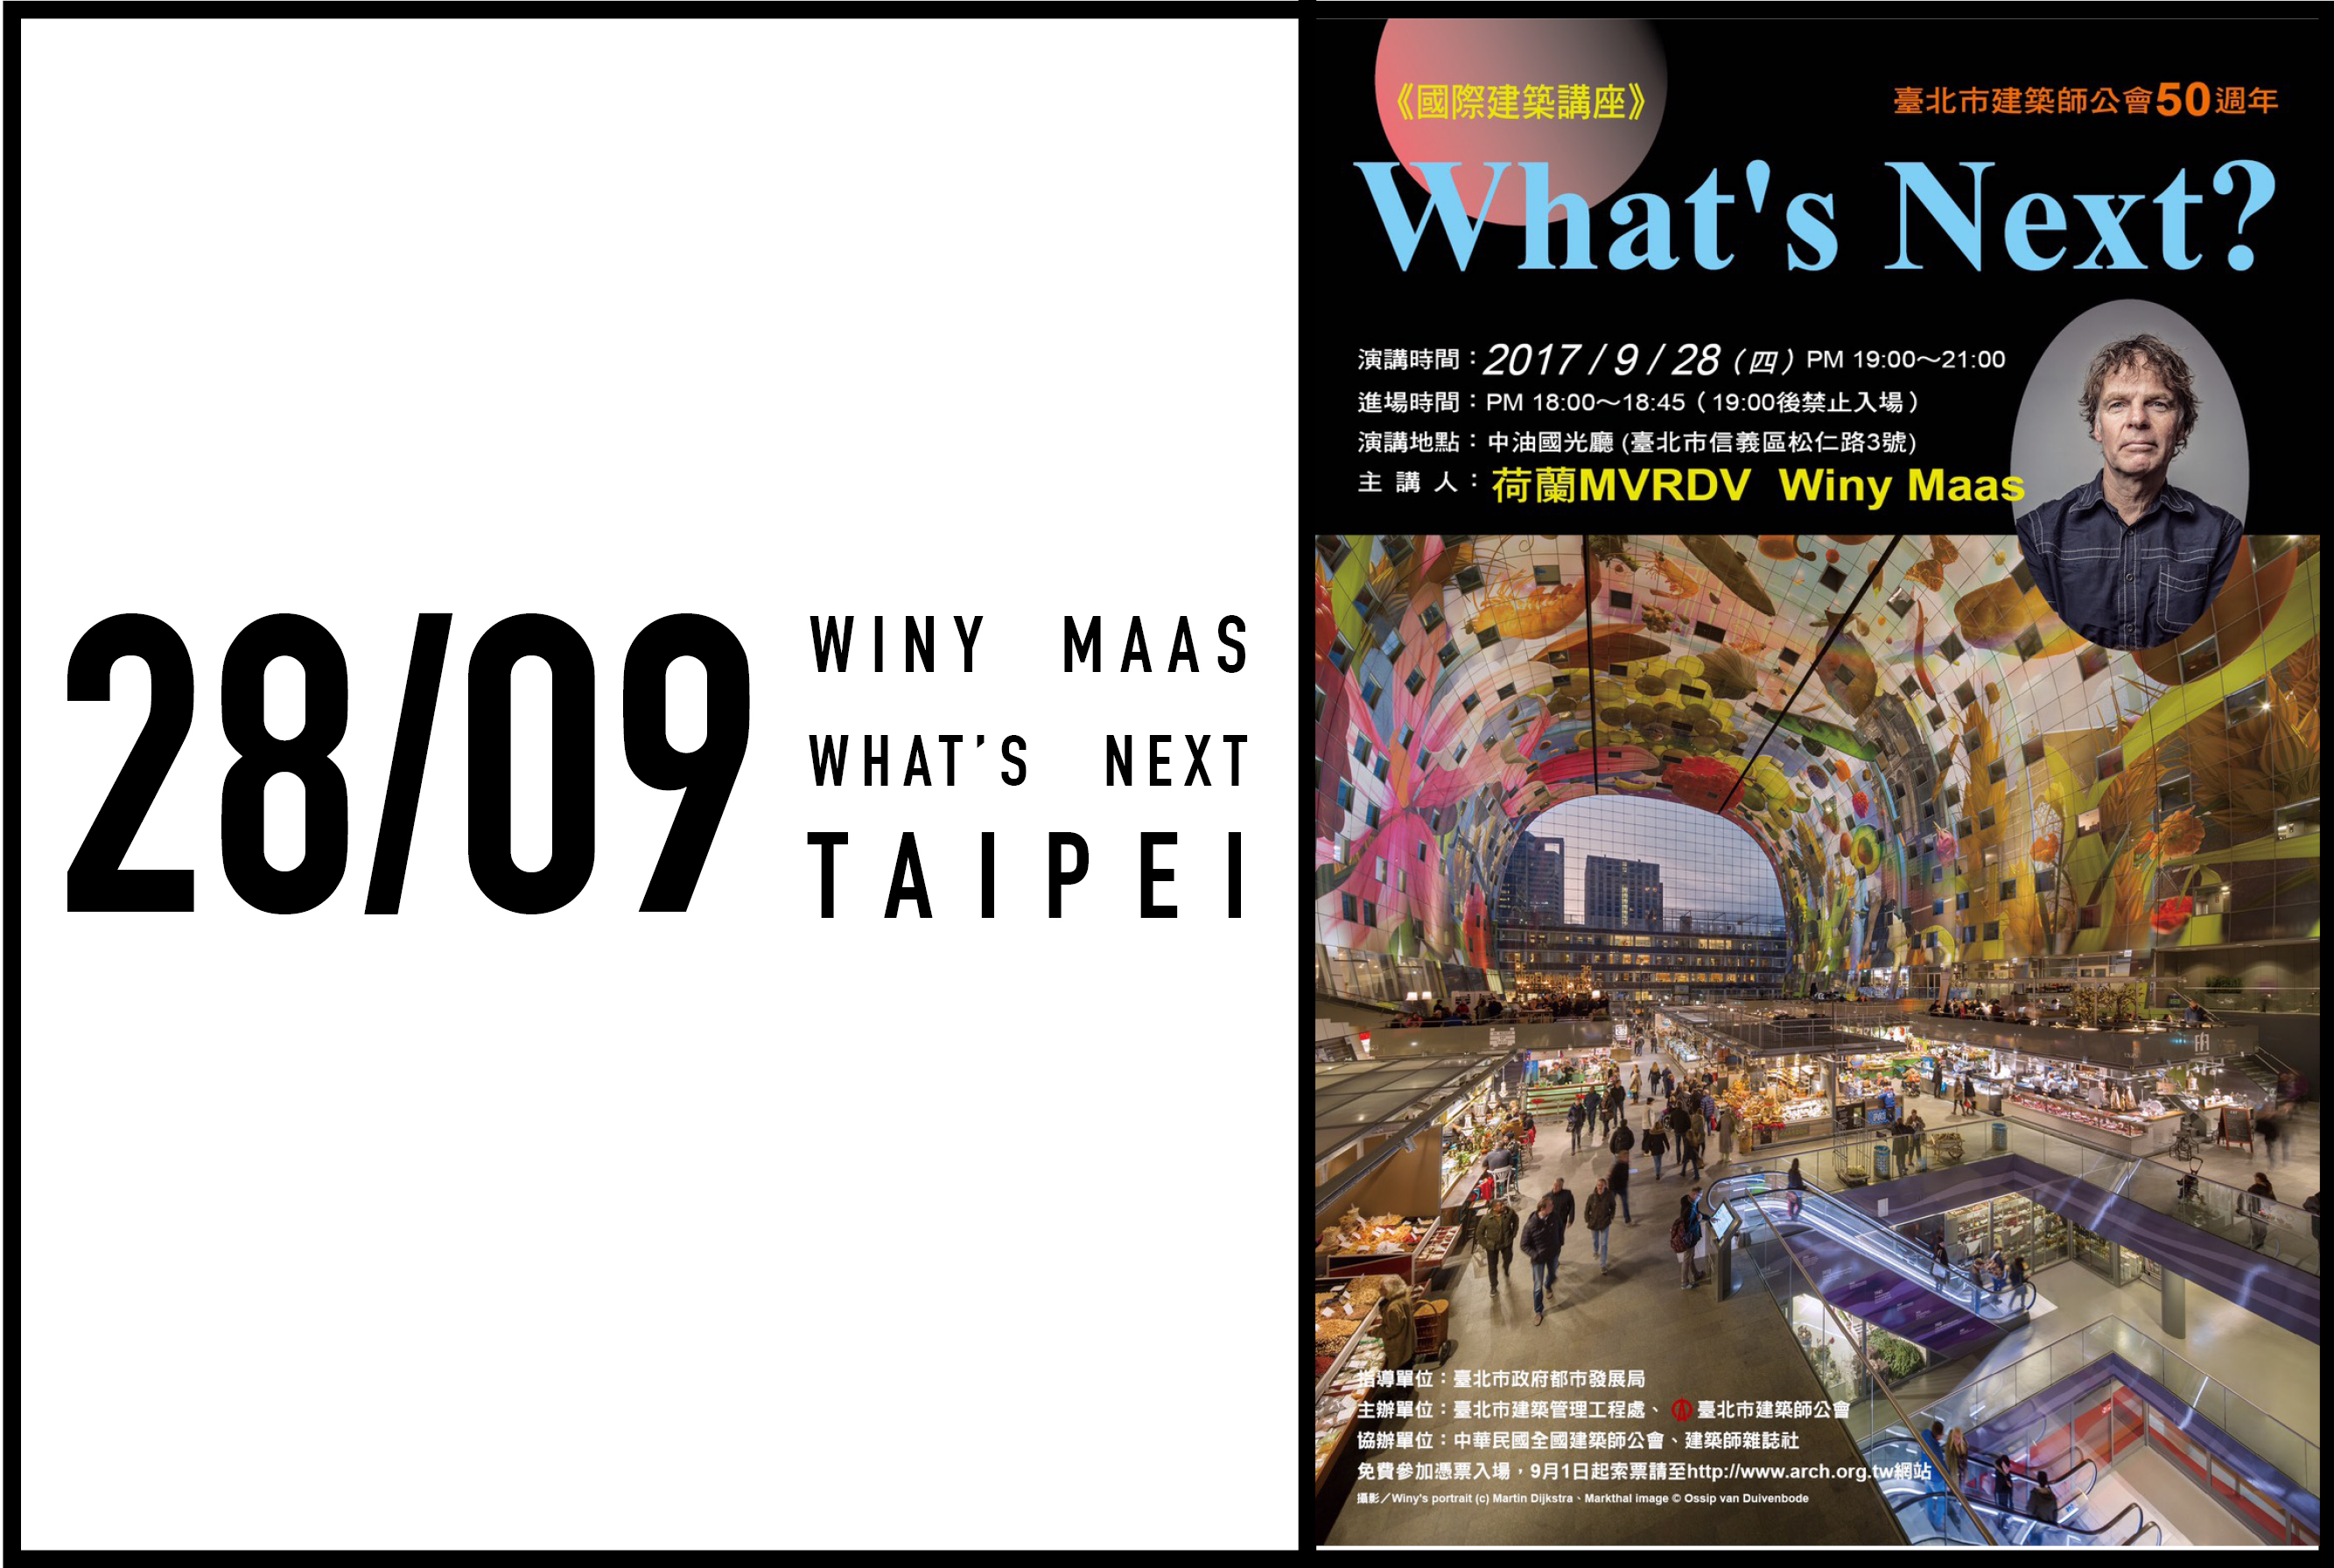 Winy Maas to give lecture on 'What's Next?' for the Taipei Association of Architects, 28 September 2017